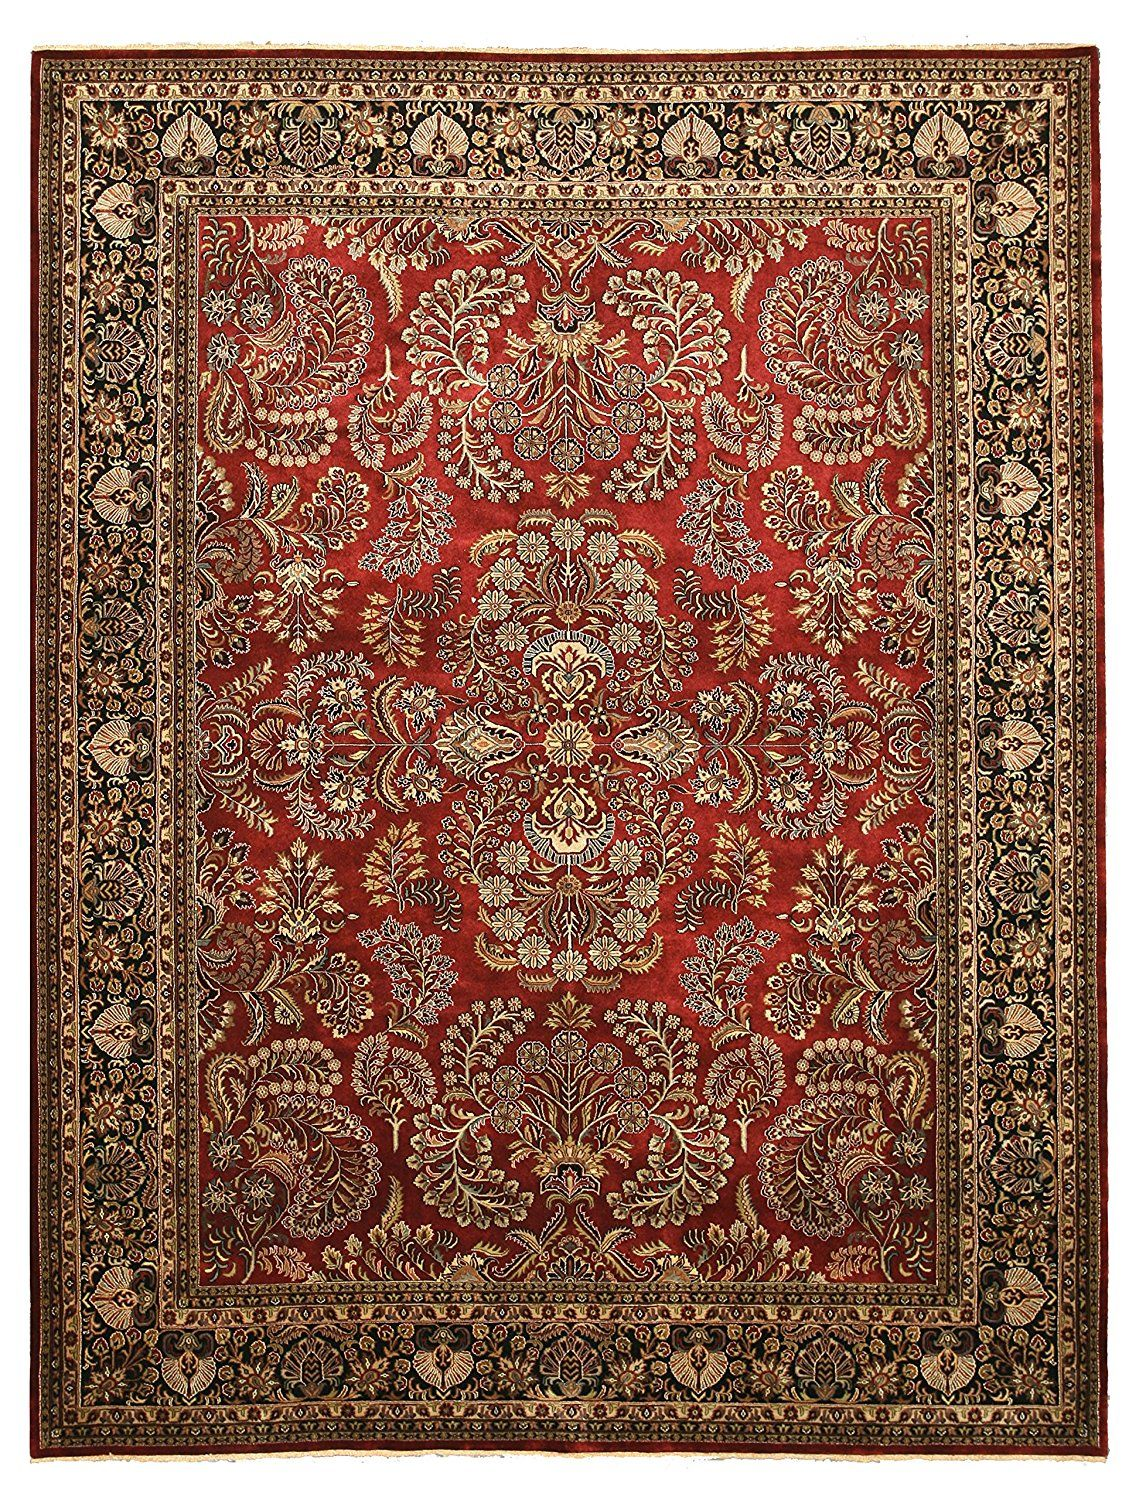 A Collection Of Area Rugs In All Kind Of Styles Shapes Colors And Best Prices From Amazon Check It Out Arearugs Home Rugs On Carpet Area Rugs Dark Carpet